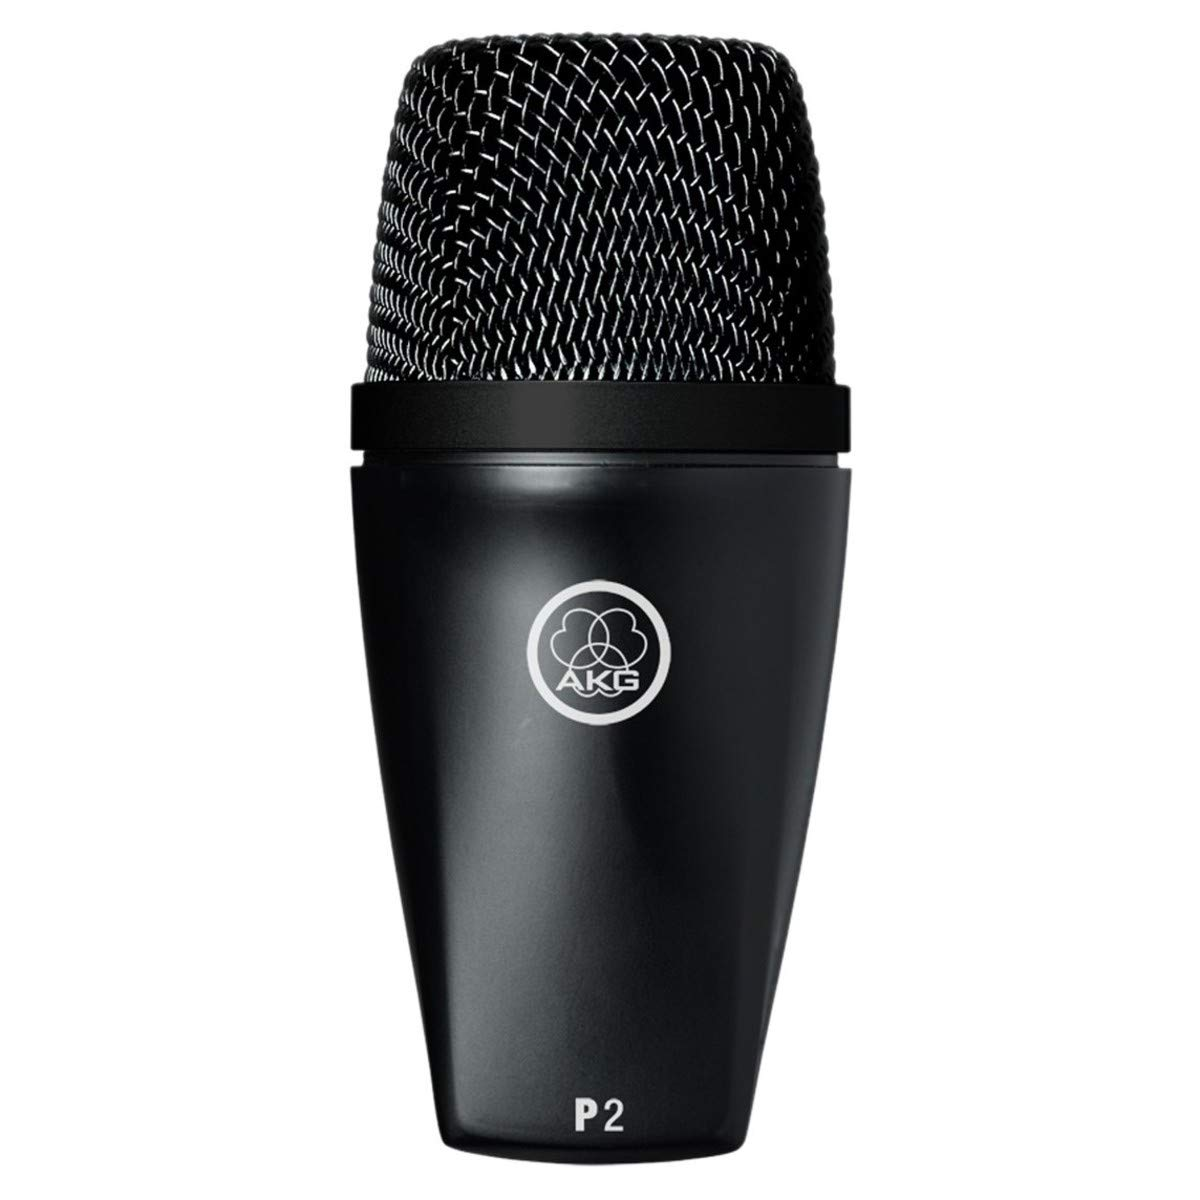 AKG P2 High-Performance Dynamic Bass Microphone by AKG Pro Audio